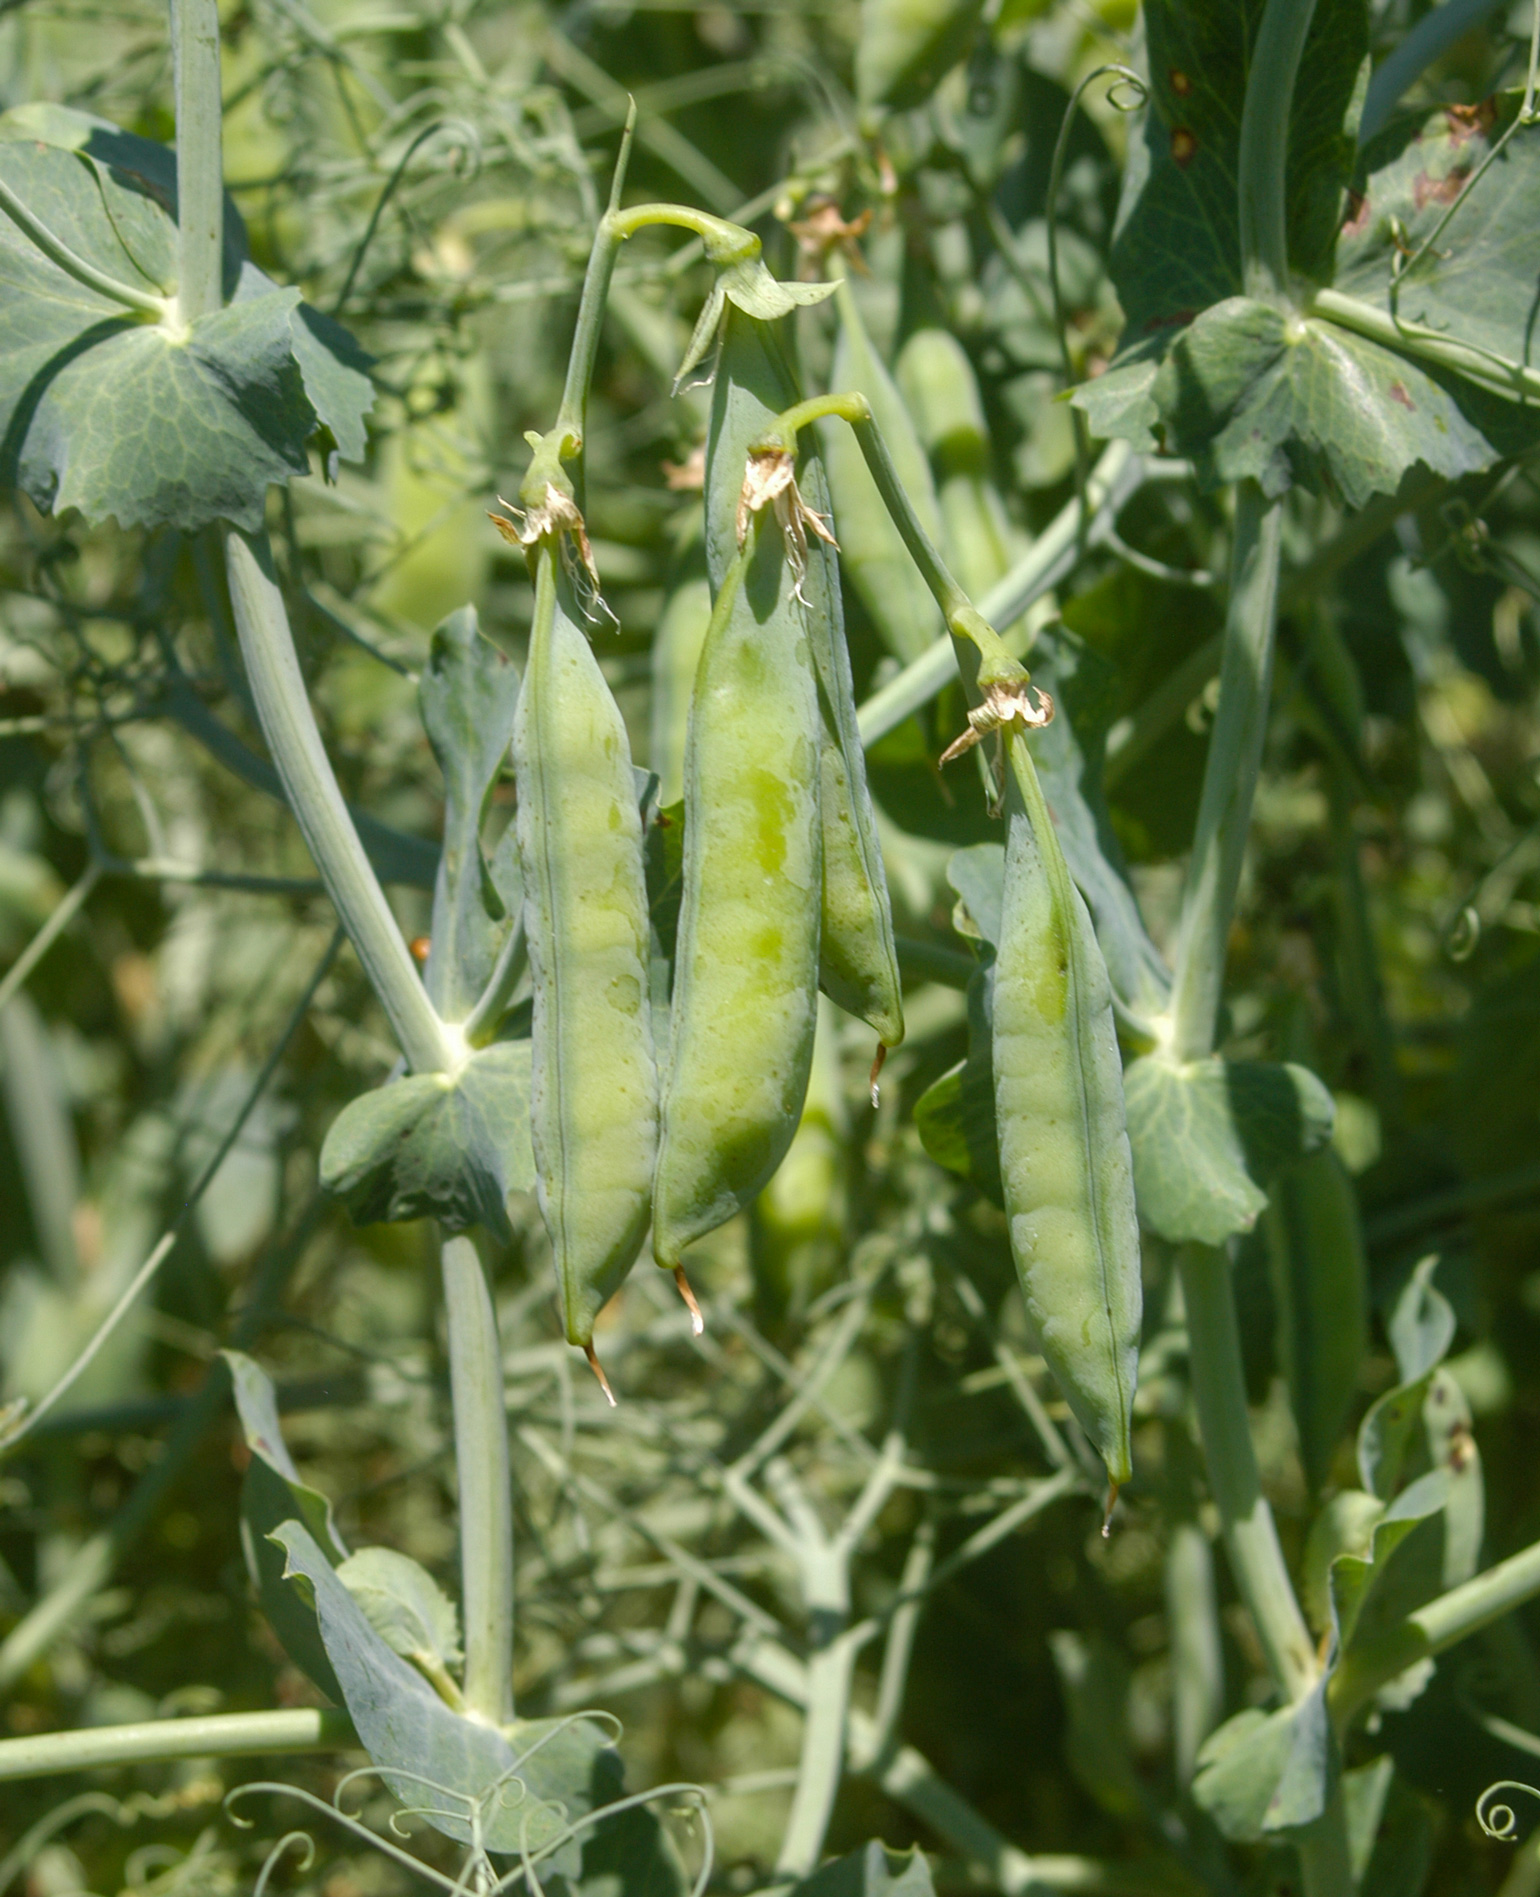 Closeup of a field pea